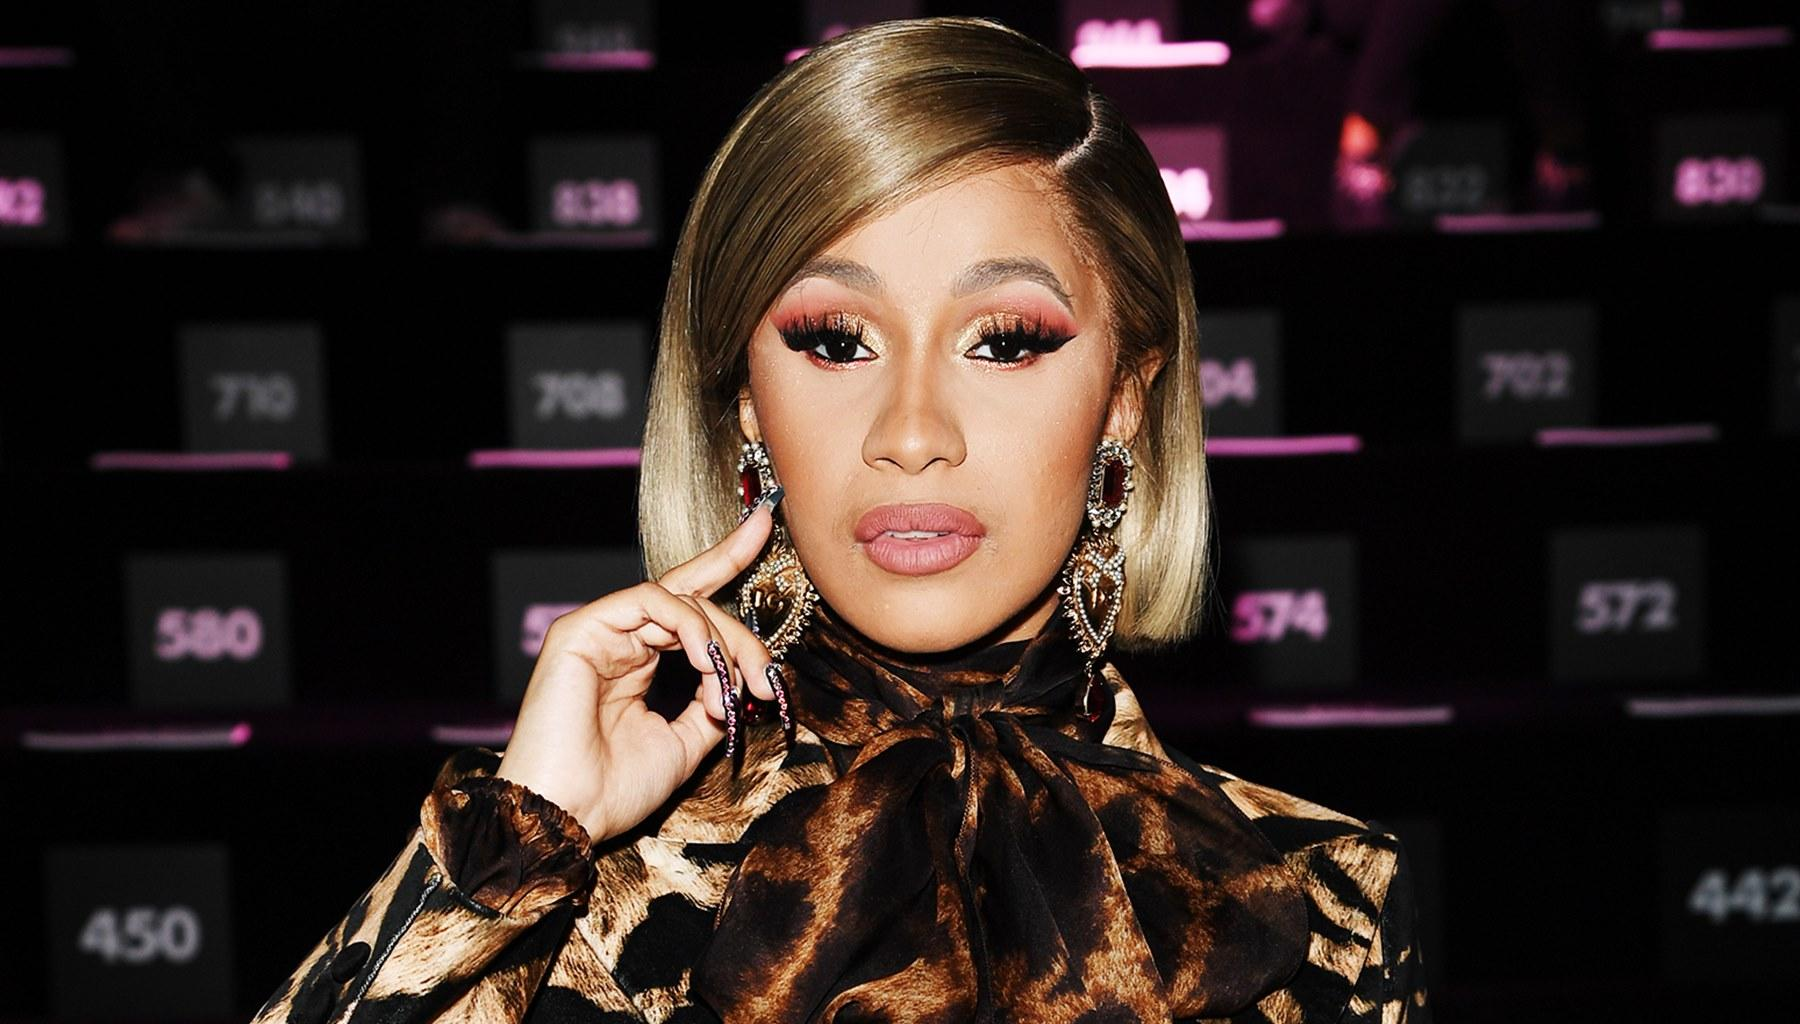 Bernie Sanders Confirms That Cardi B Will Be Making A Major Career Change In The Future